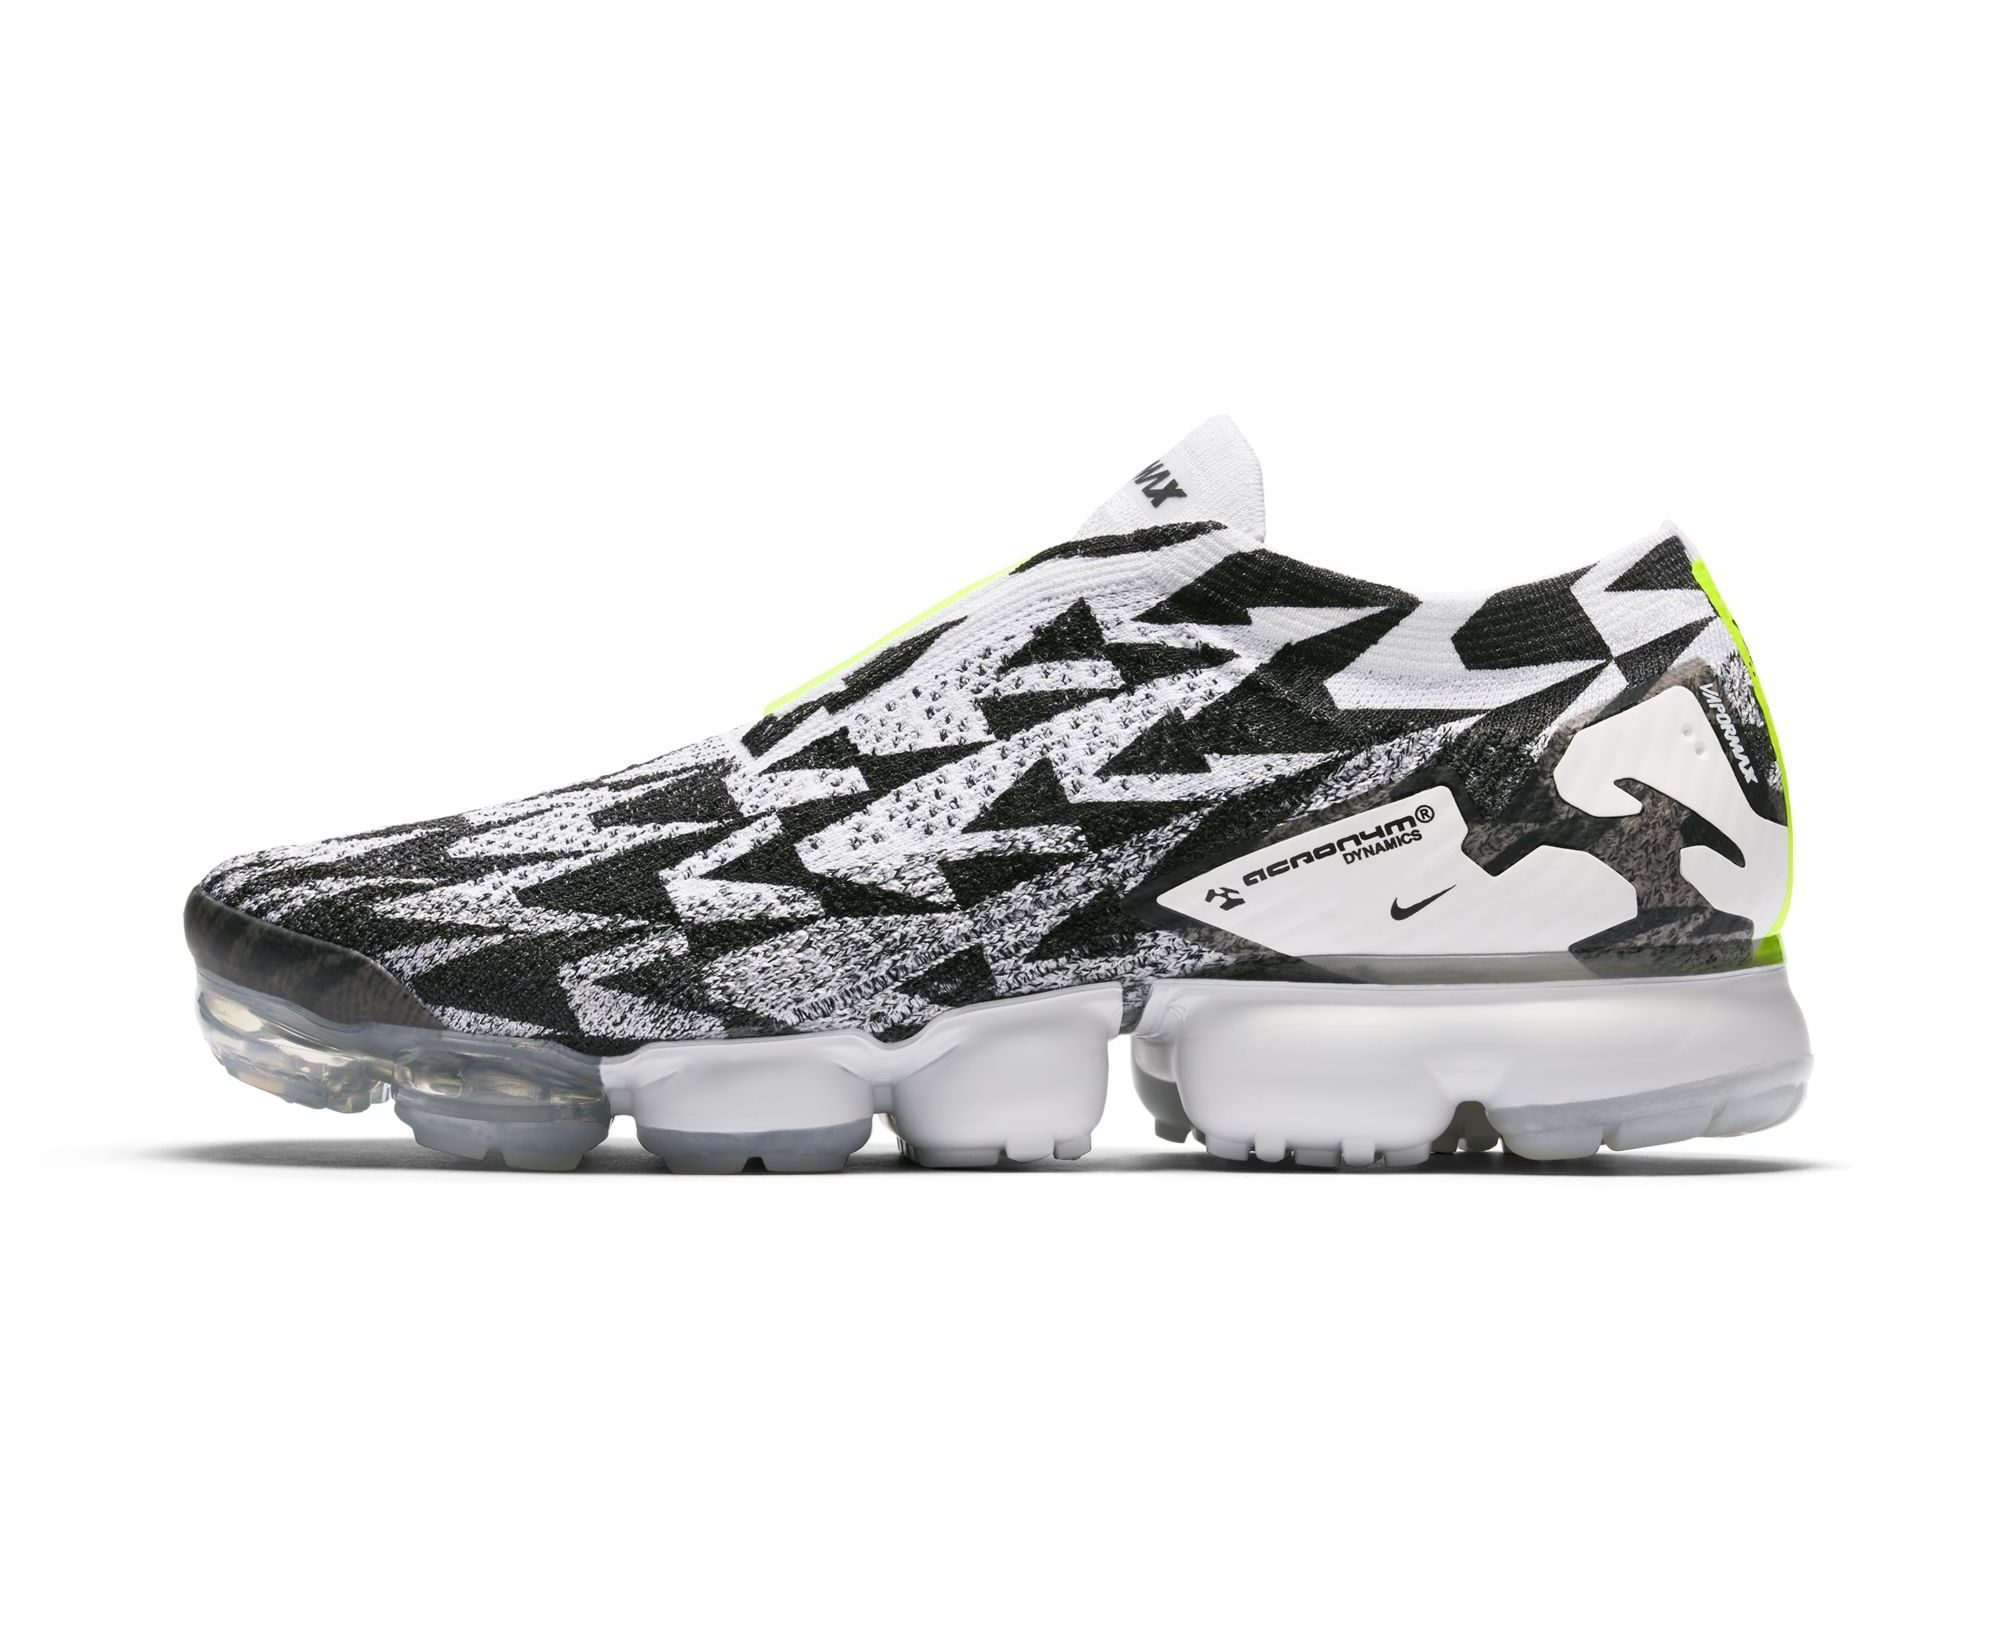 128f4ac908 Official Images of the ACRONYM x Nike Air VaporMax Flyknit Moc 2 ...